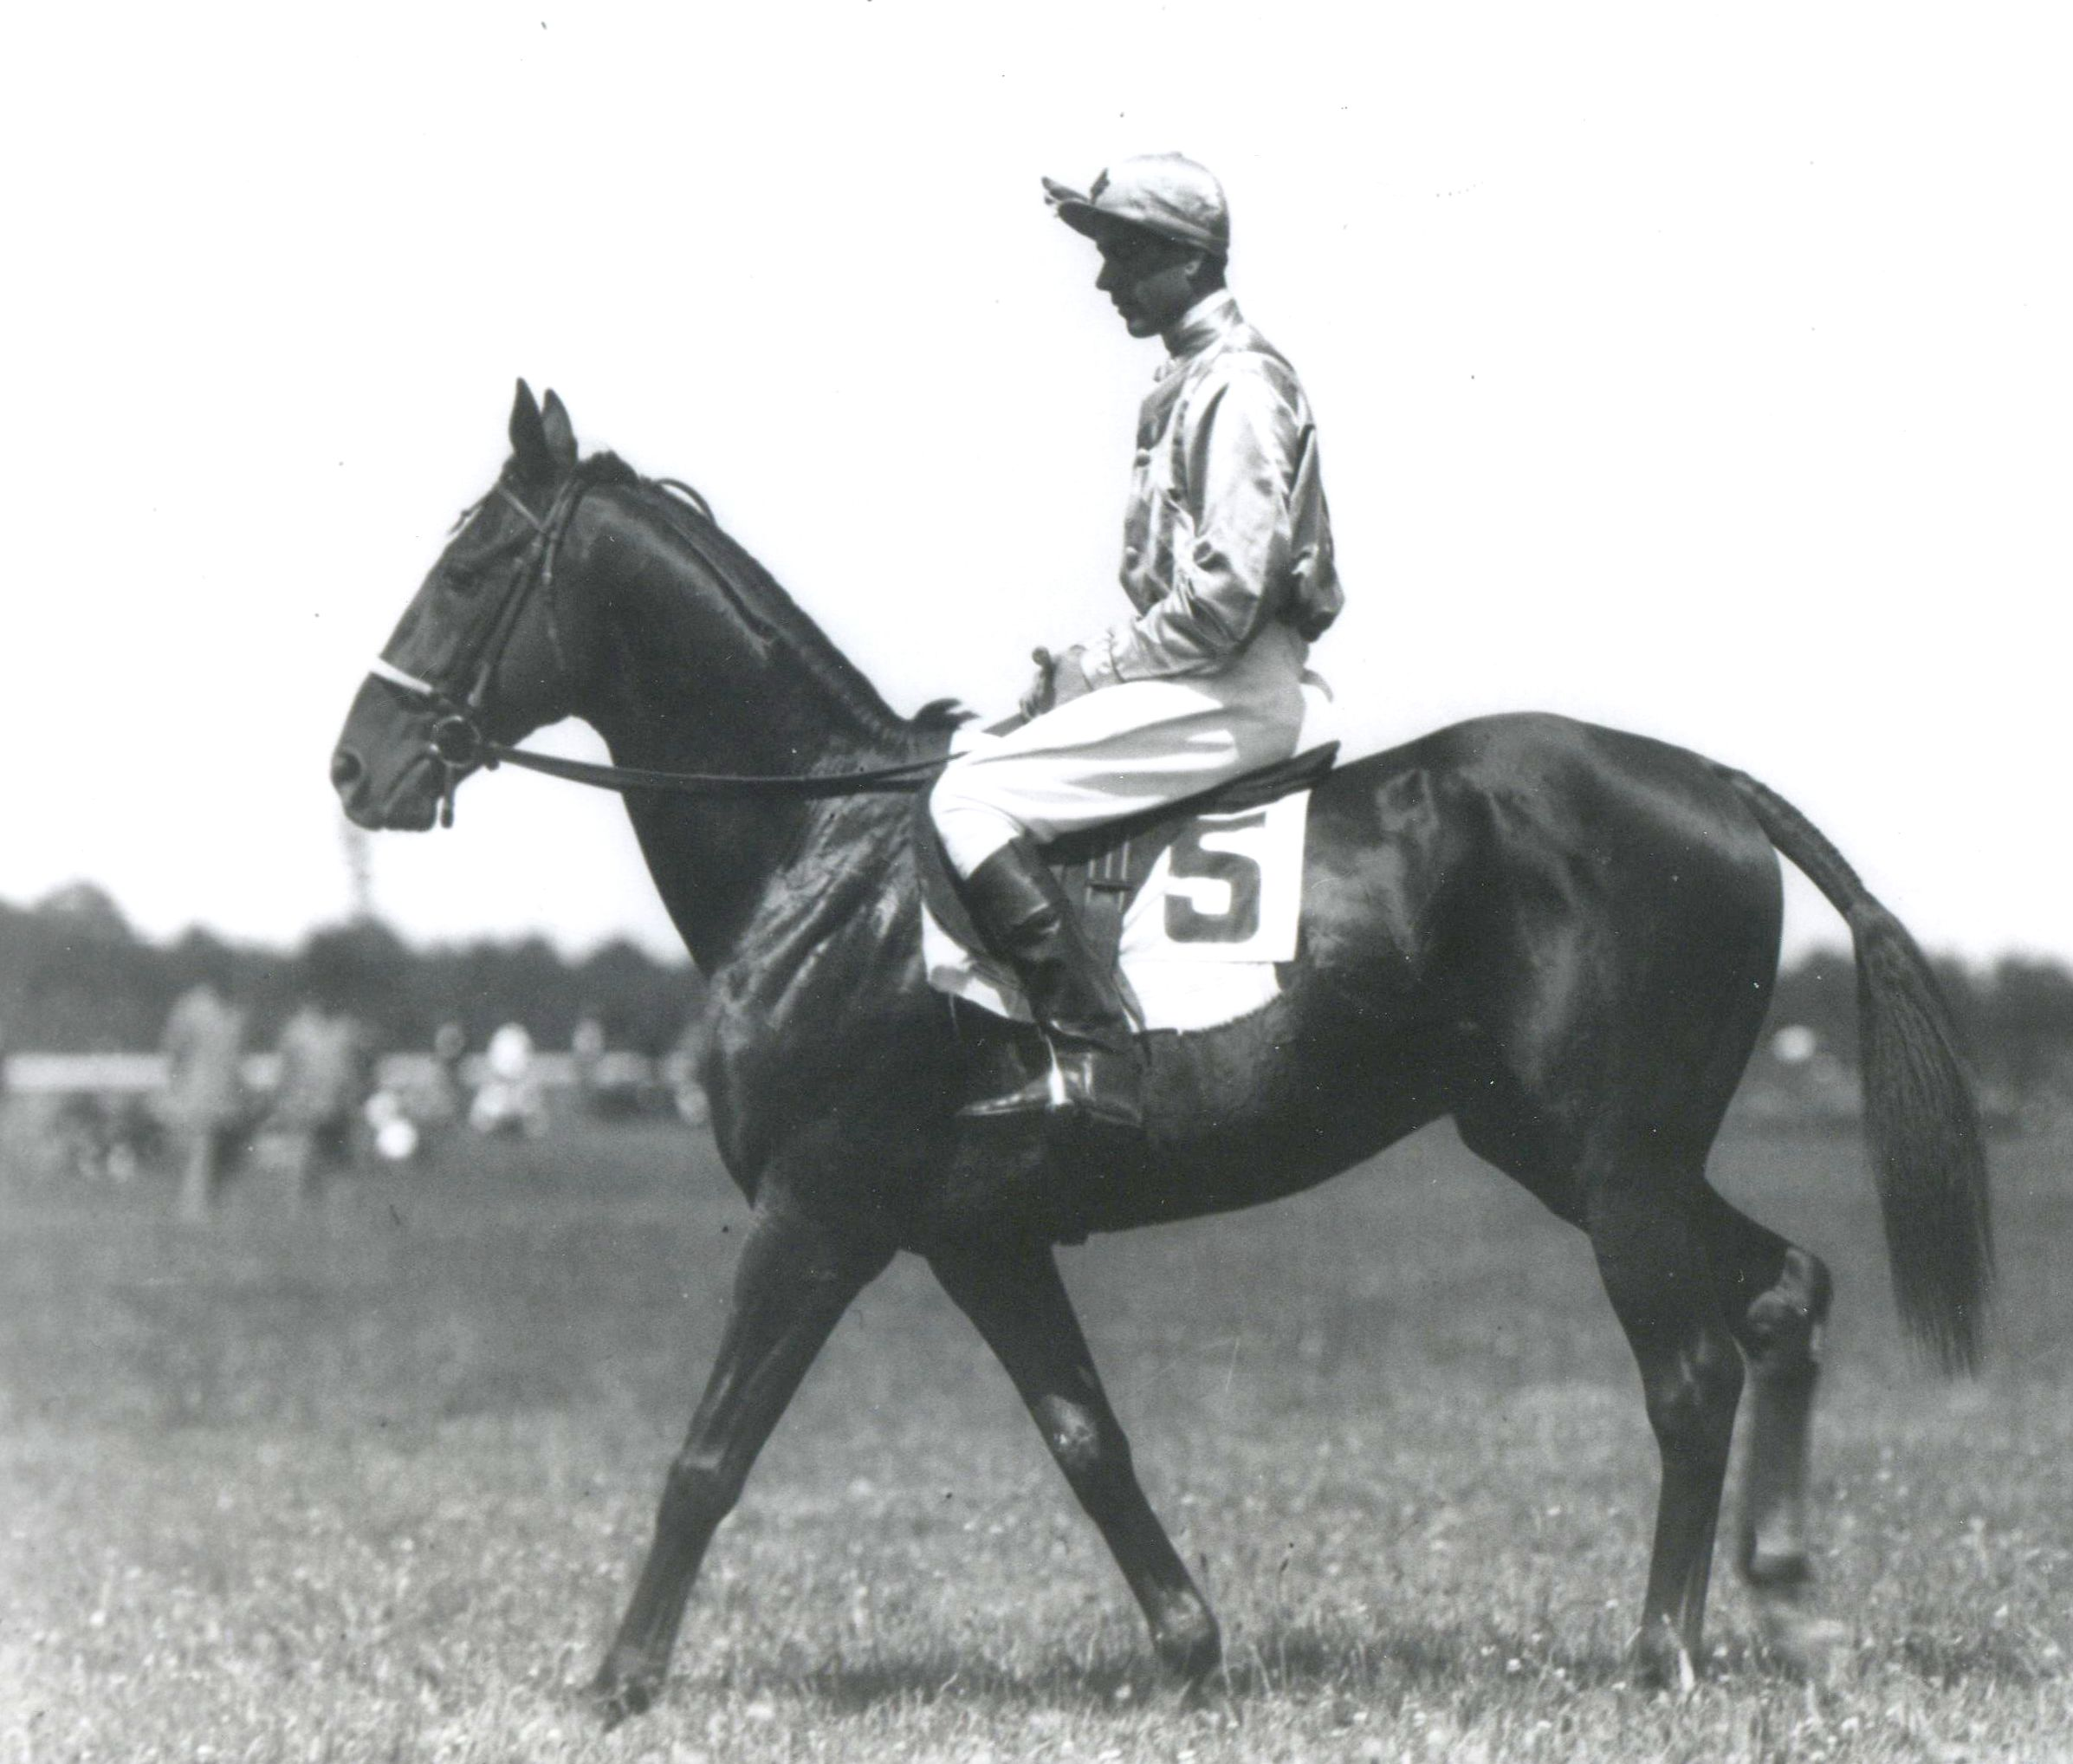 Battleship, son of Man o' War, with rider Carroll K. Bassett up (Keeneland Library Morgan Collection/Museum Collection)